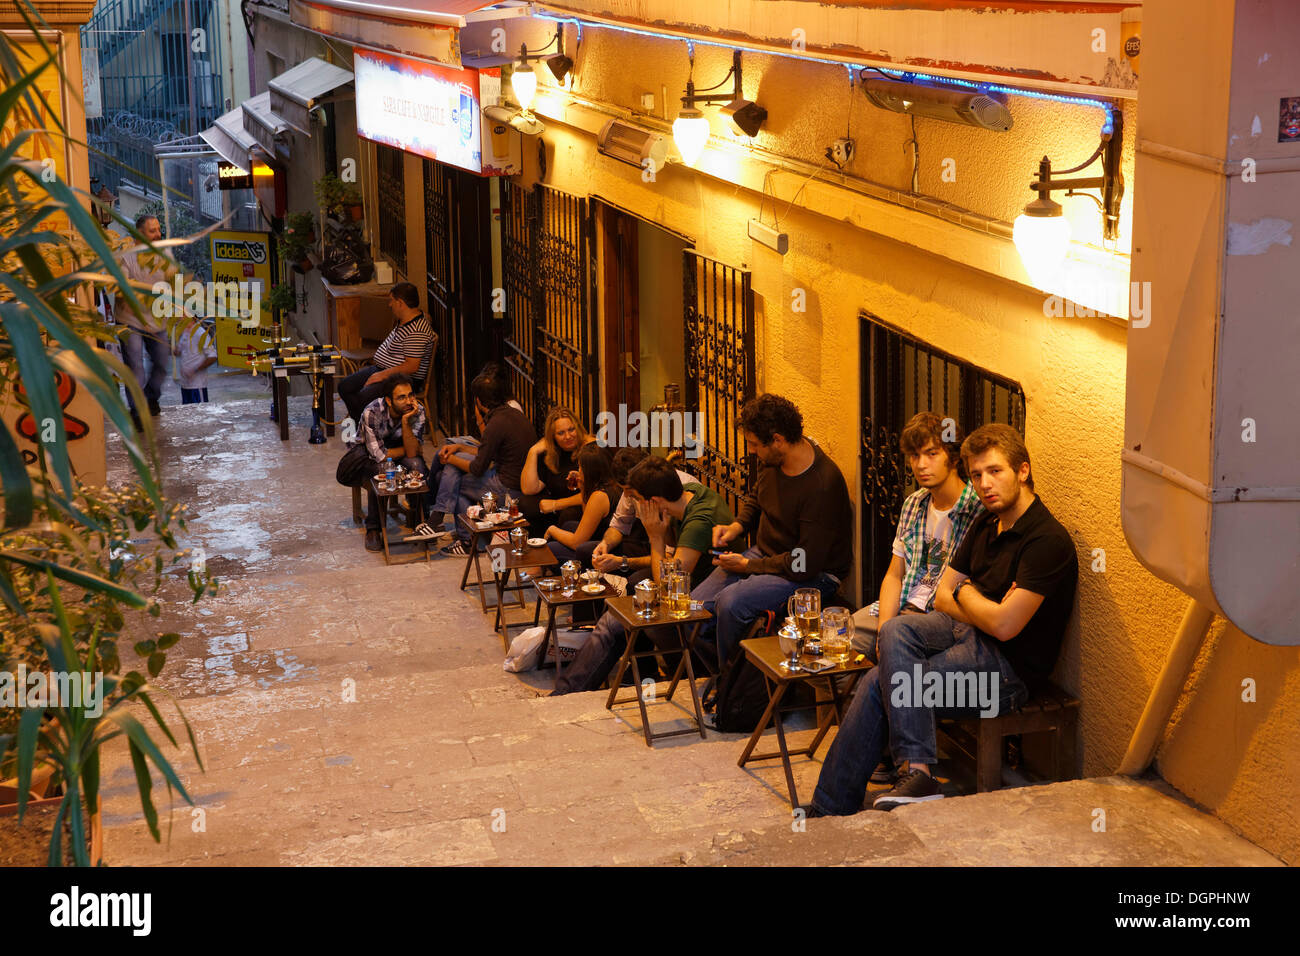 Sidewalk cafe in an alley off Istiklal Caddesi or Independence Road, Beyoğlu, Istanbul, European side, Istanbul Province - Stock Image